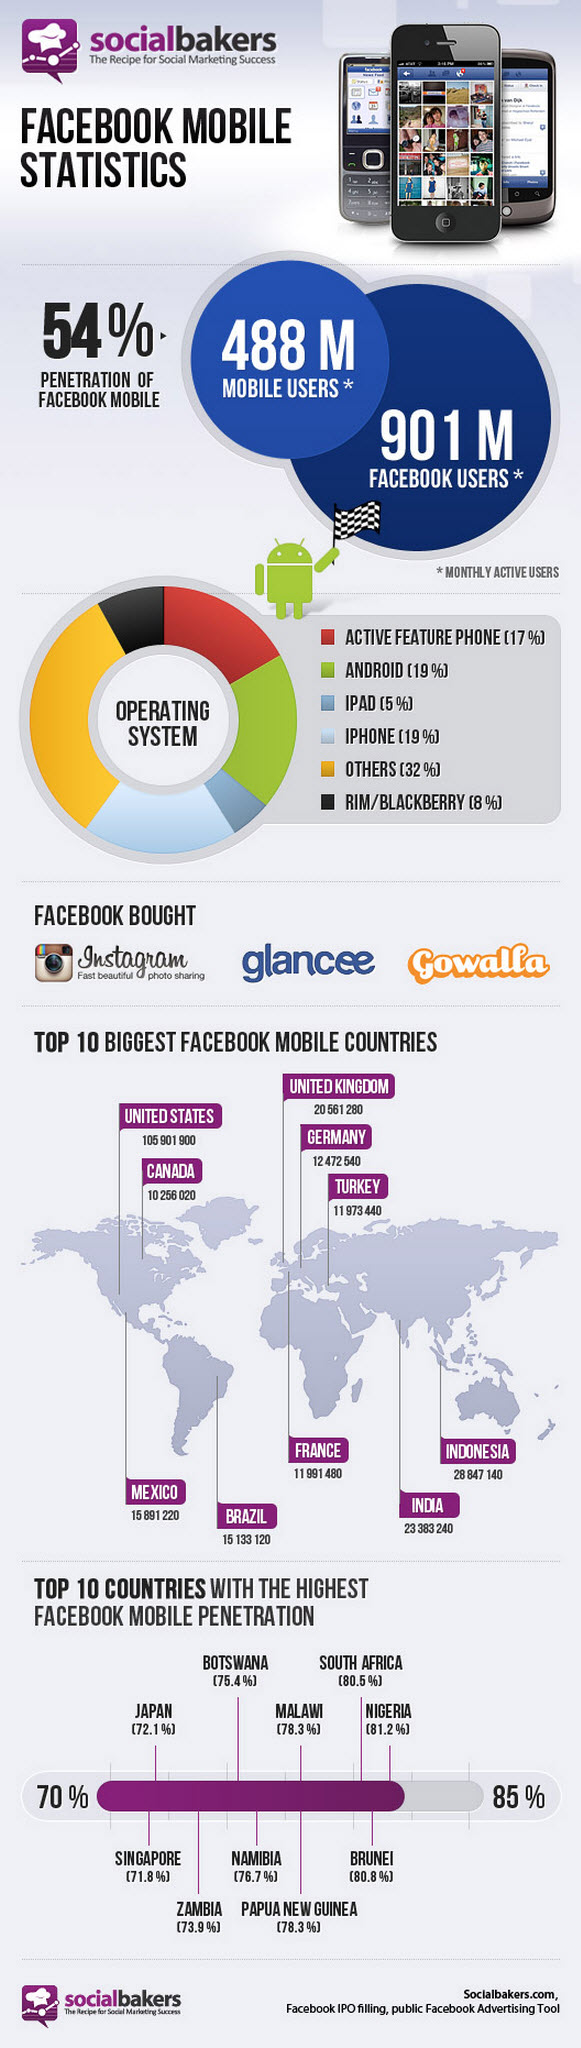 Facebook and Mobile Growth Infographic